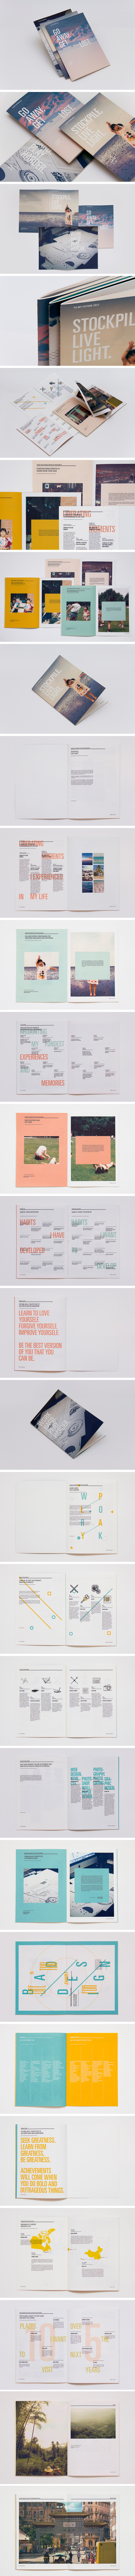 To My Future Self (D&AD New Blood)